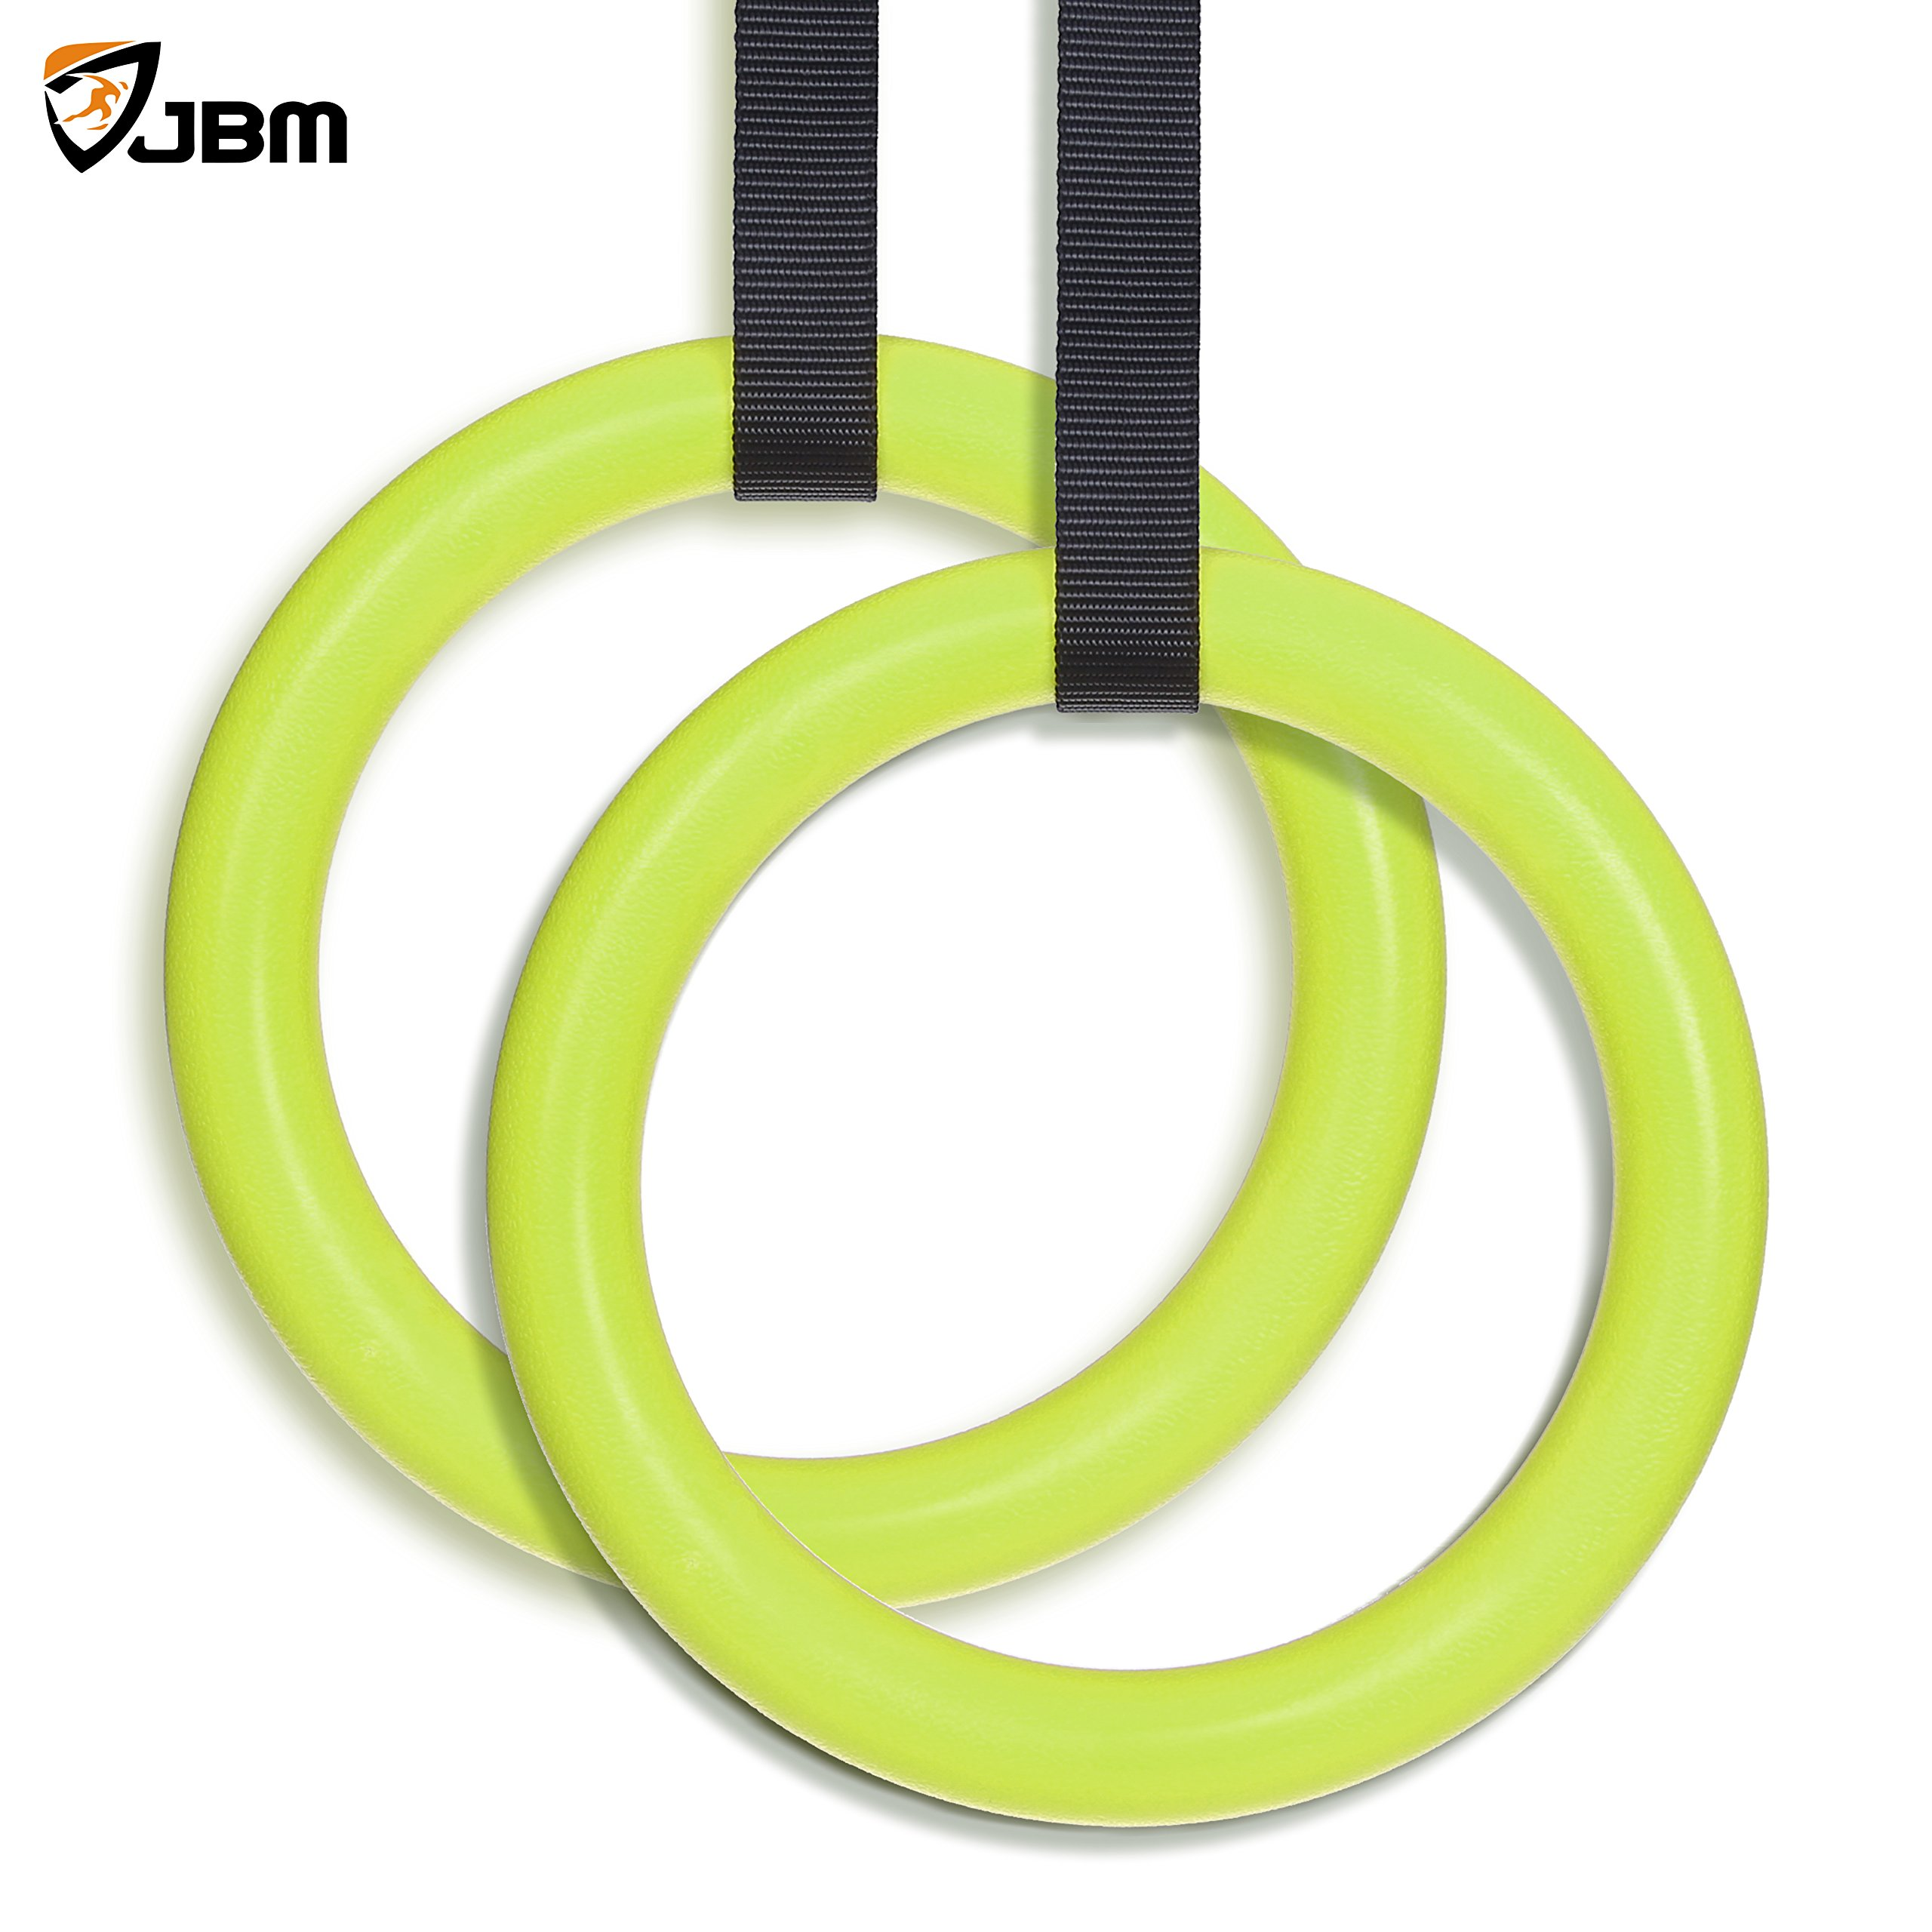 premium customer exercise equipment fitness cross duty heavy training pcr best rings helpful rated gymnastic gymnastics in reviews